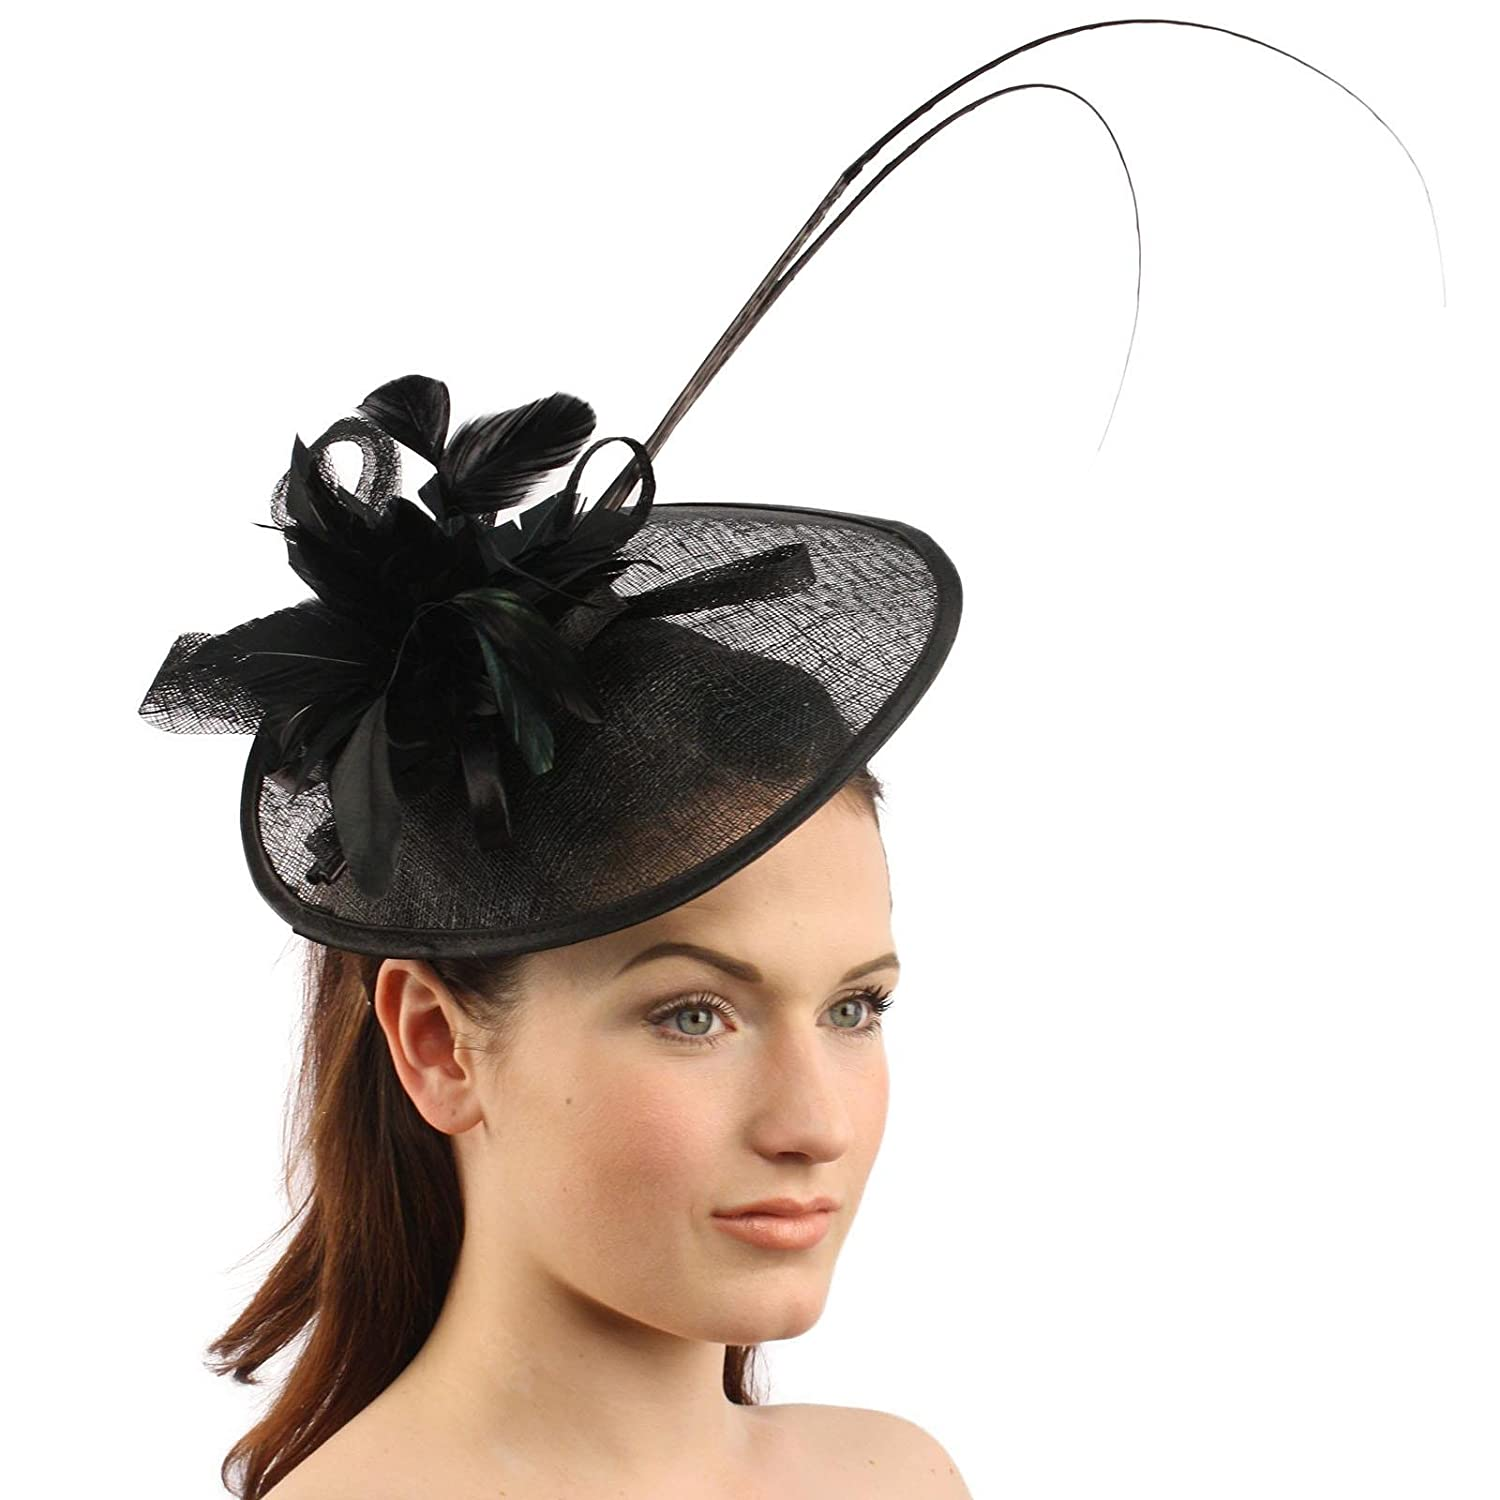 Handmade Feathers Floral Headband Fascinator Disc Millinery Cocktail Hat  Black at Amazon Women s Clothing store  Novelty Headwraps Headwear bf7f0f000a5